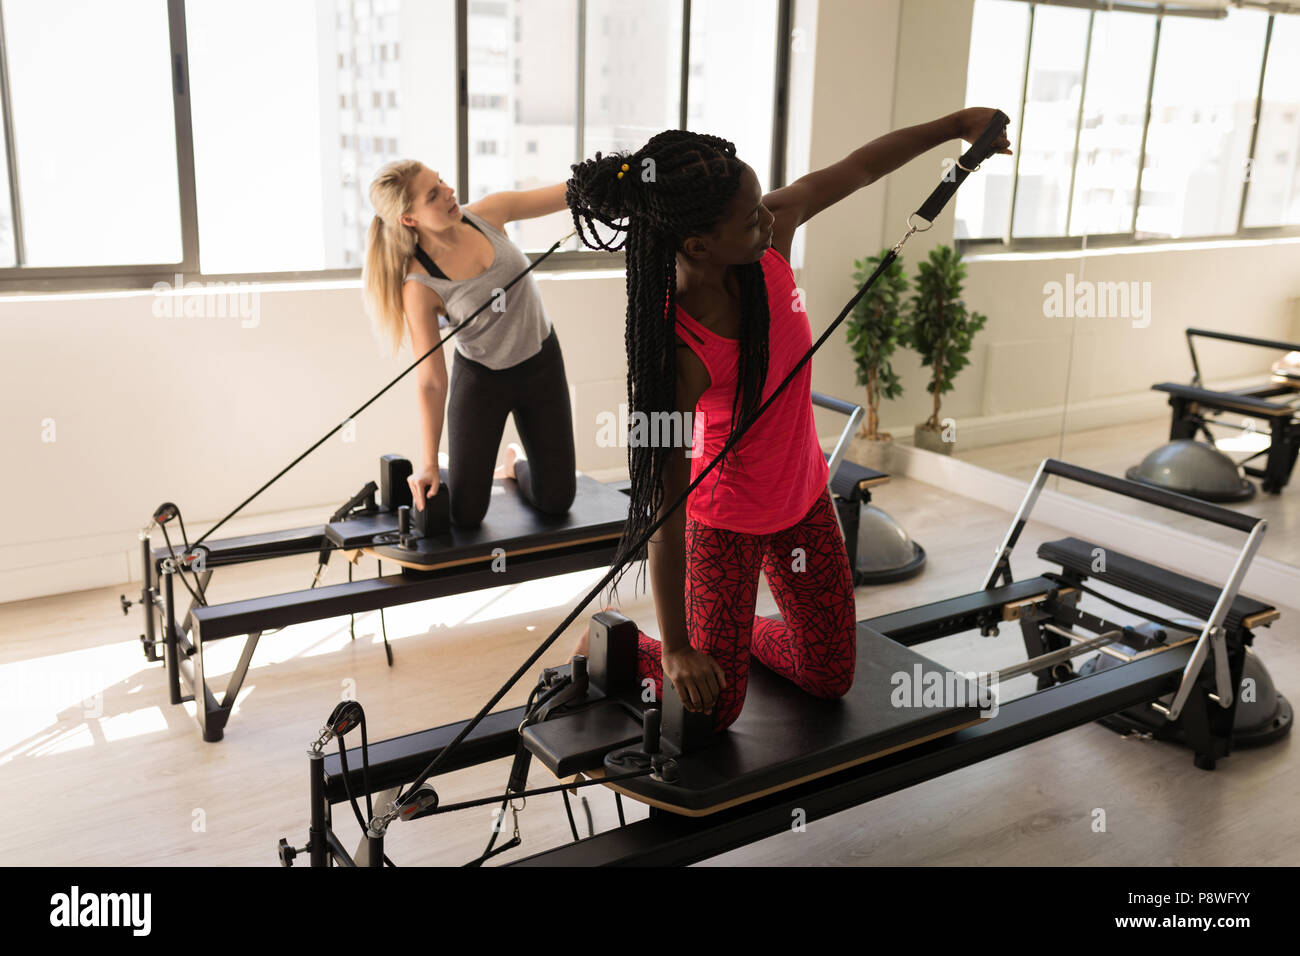 Two women exercising on stretching machine - Stock Image